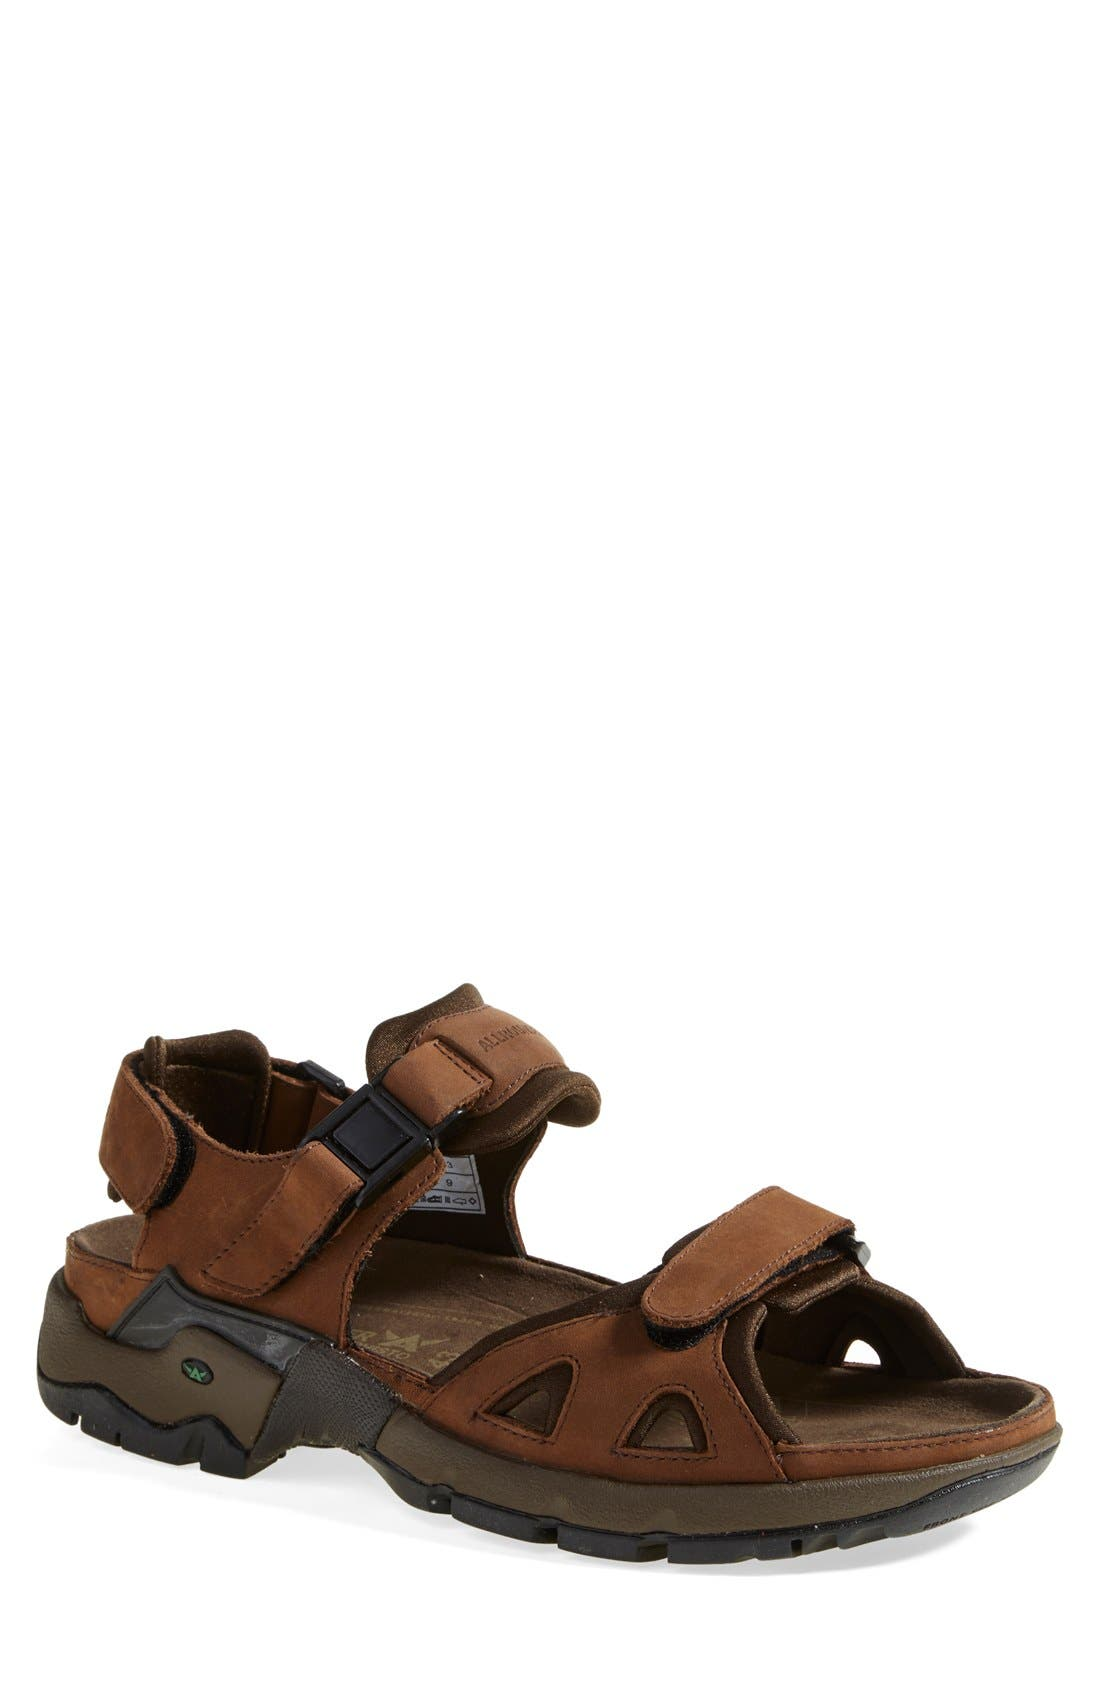 Allrounder by Mephisto 'Alligator' Sandal